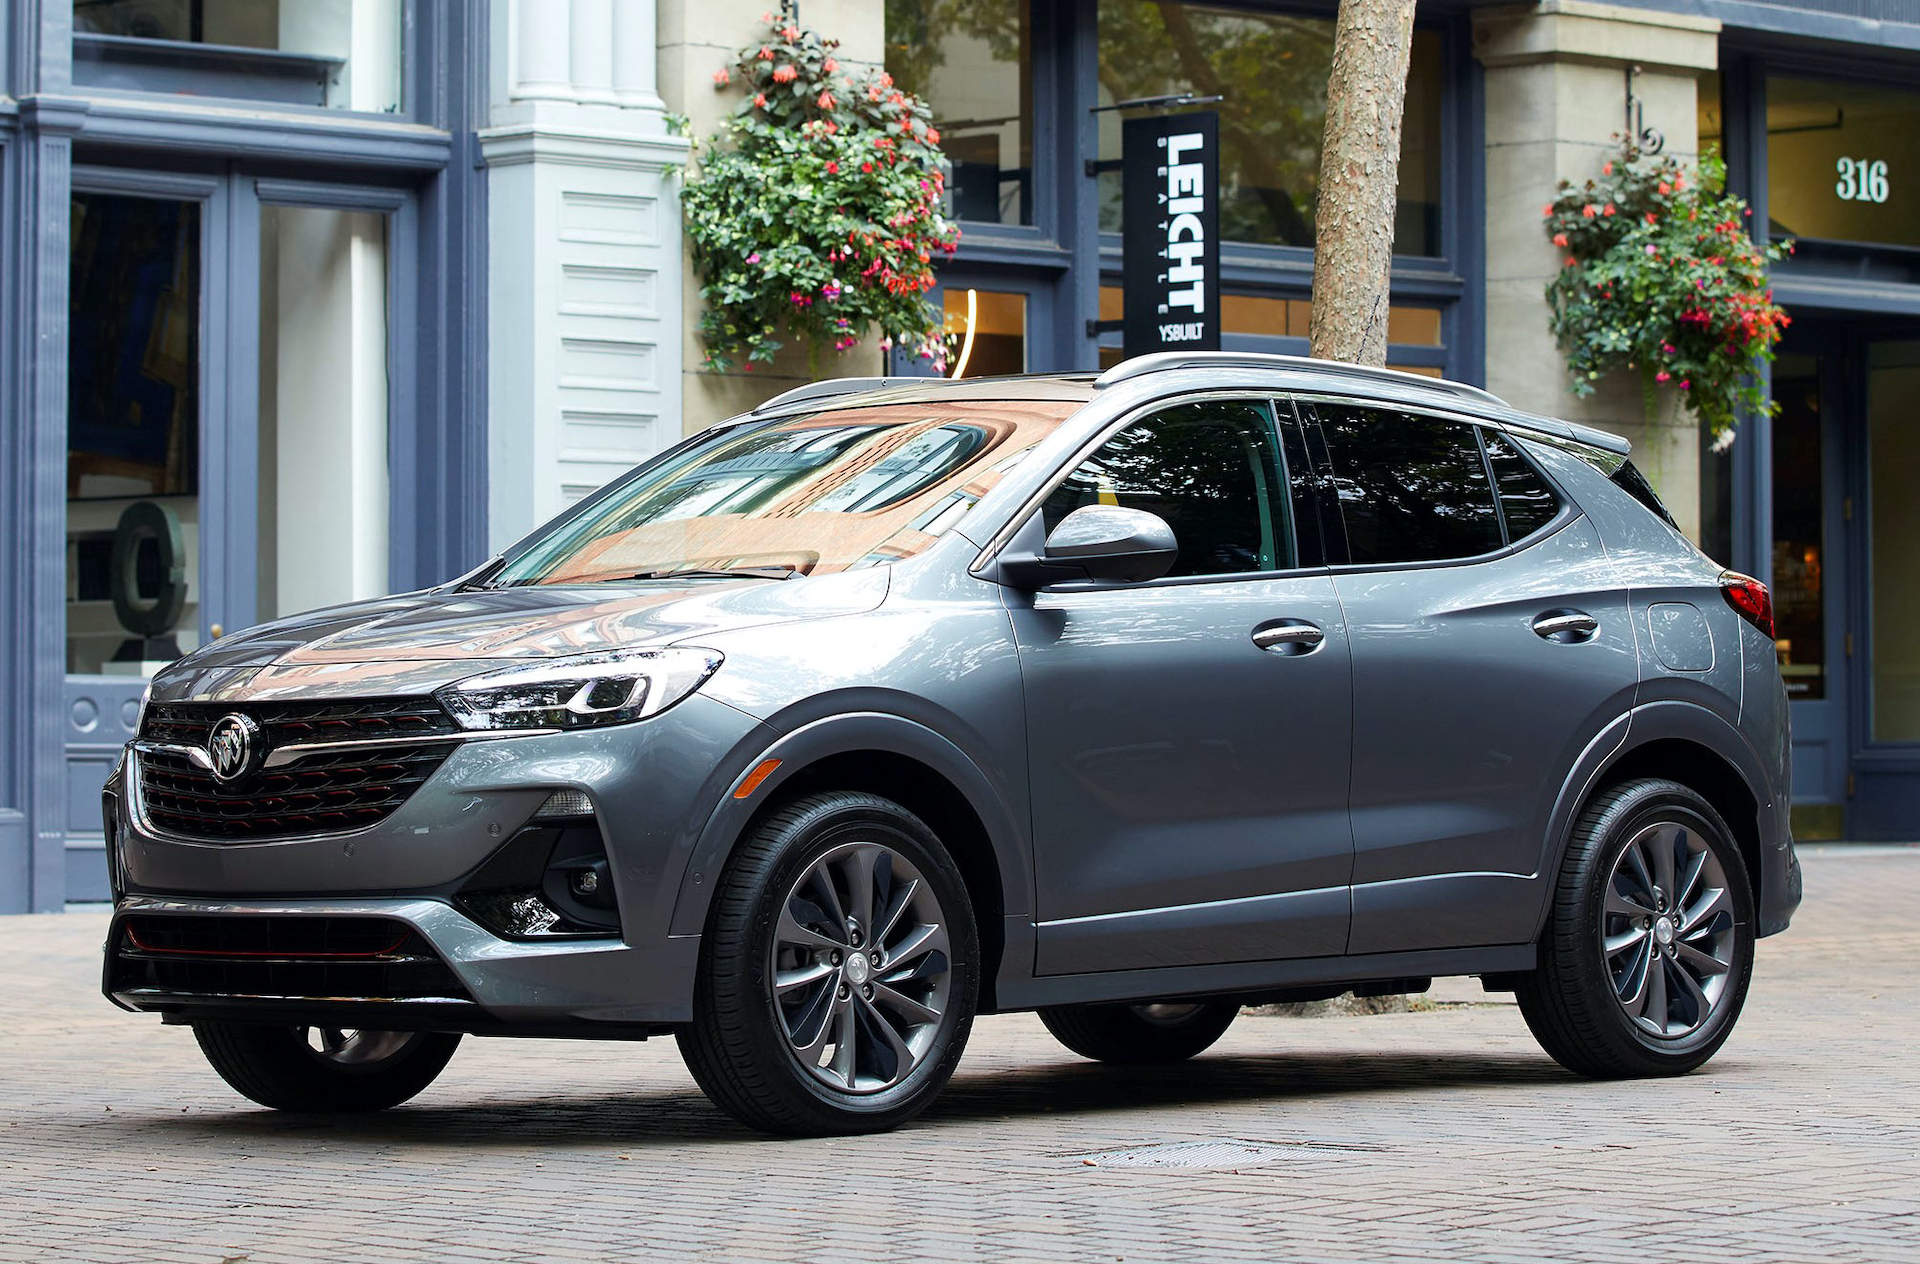 2021 Buick Encore Review, Ratings, Specs, Prices, And Photos 2021 Buick Encore Reviews, Preferred, Price